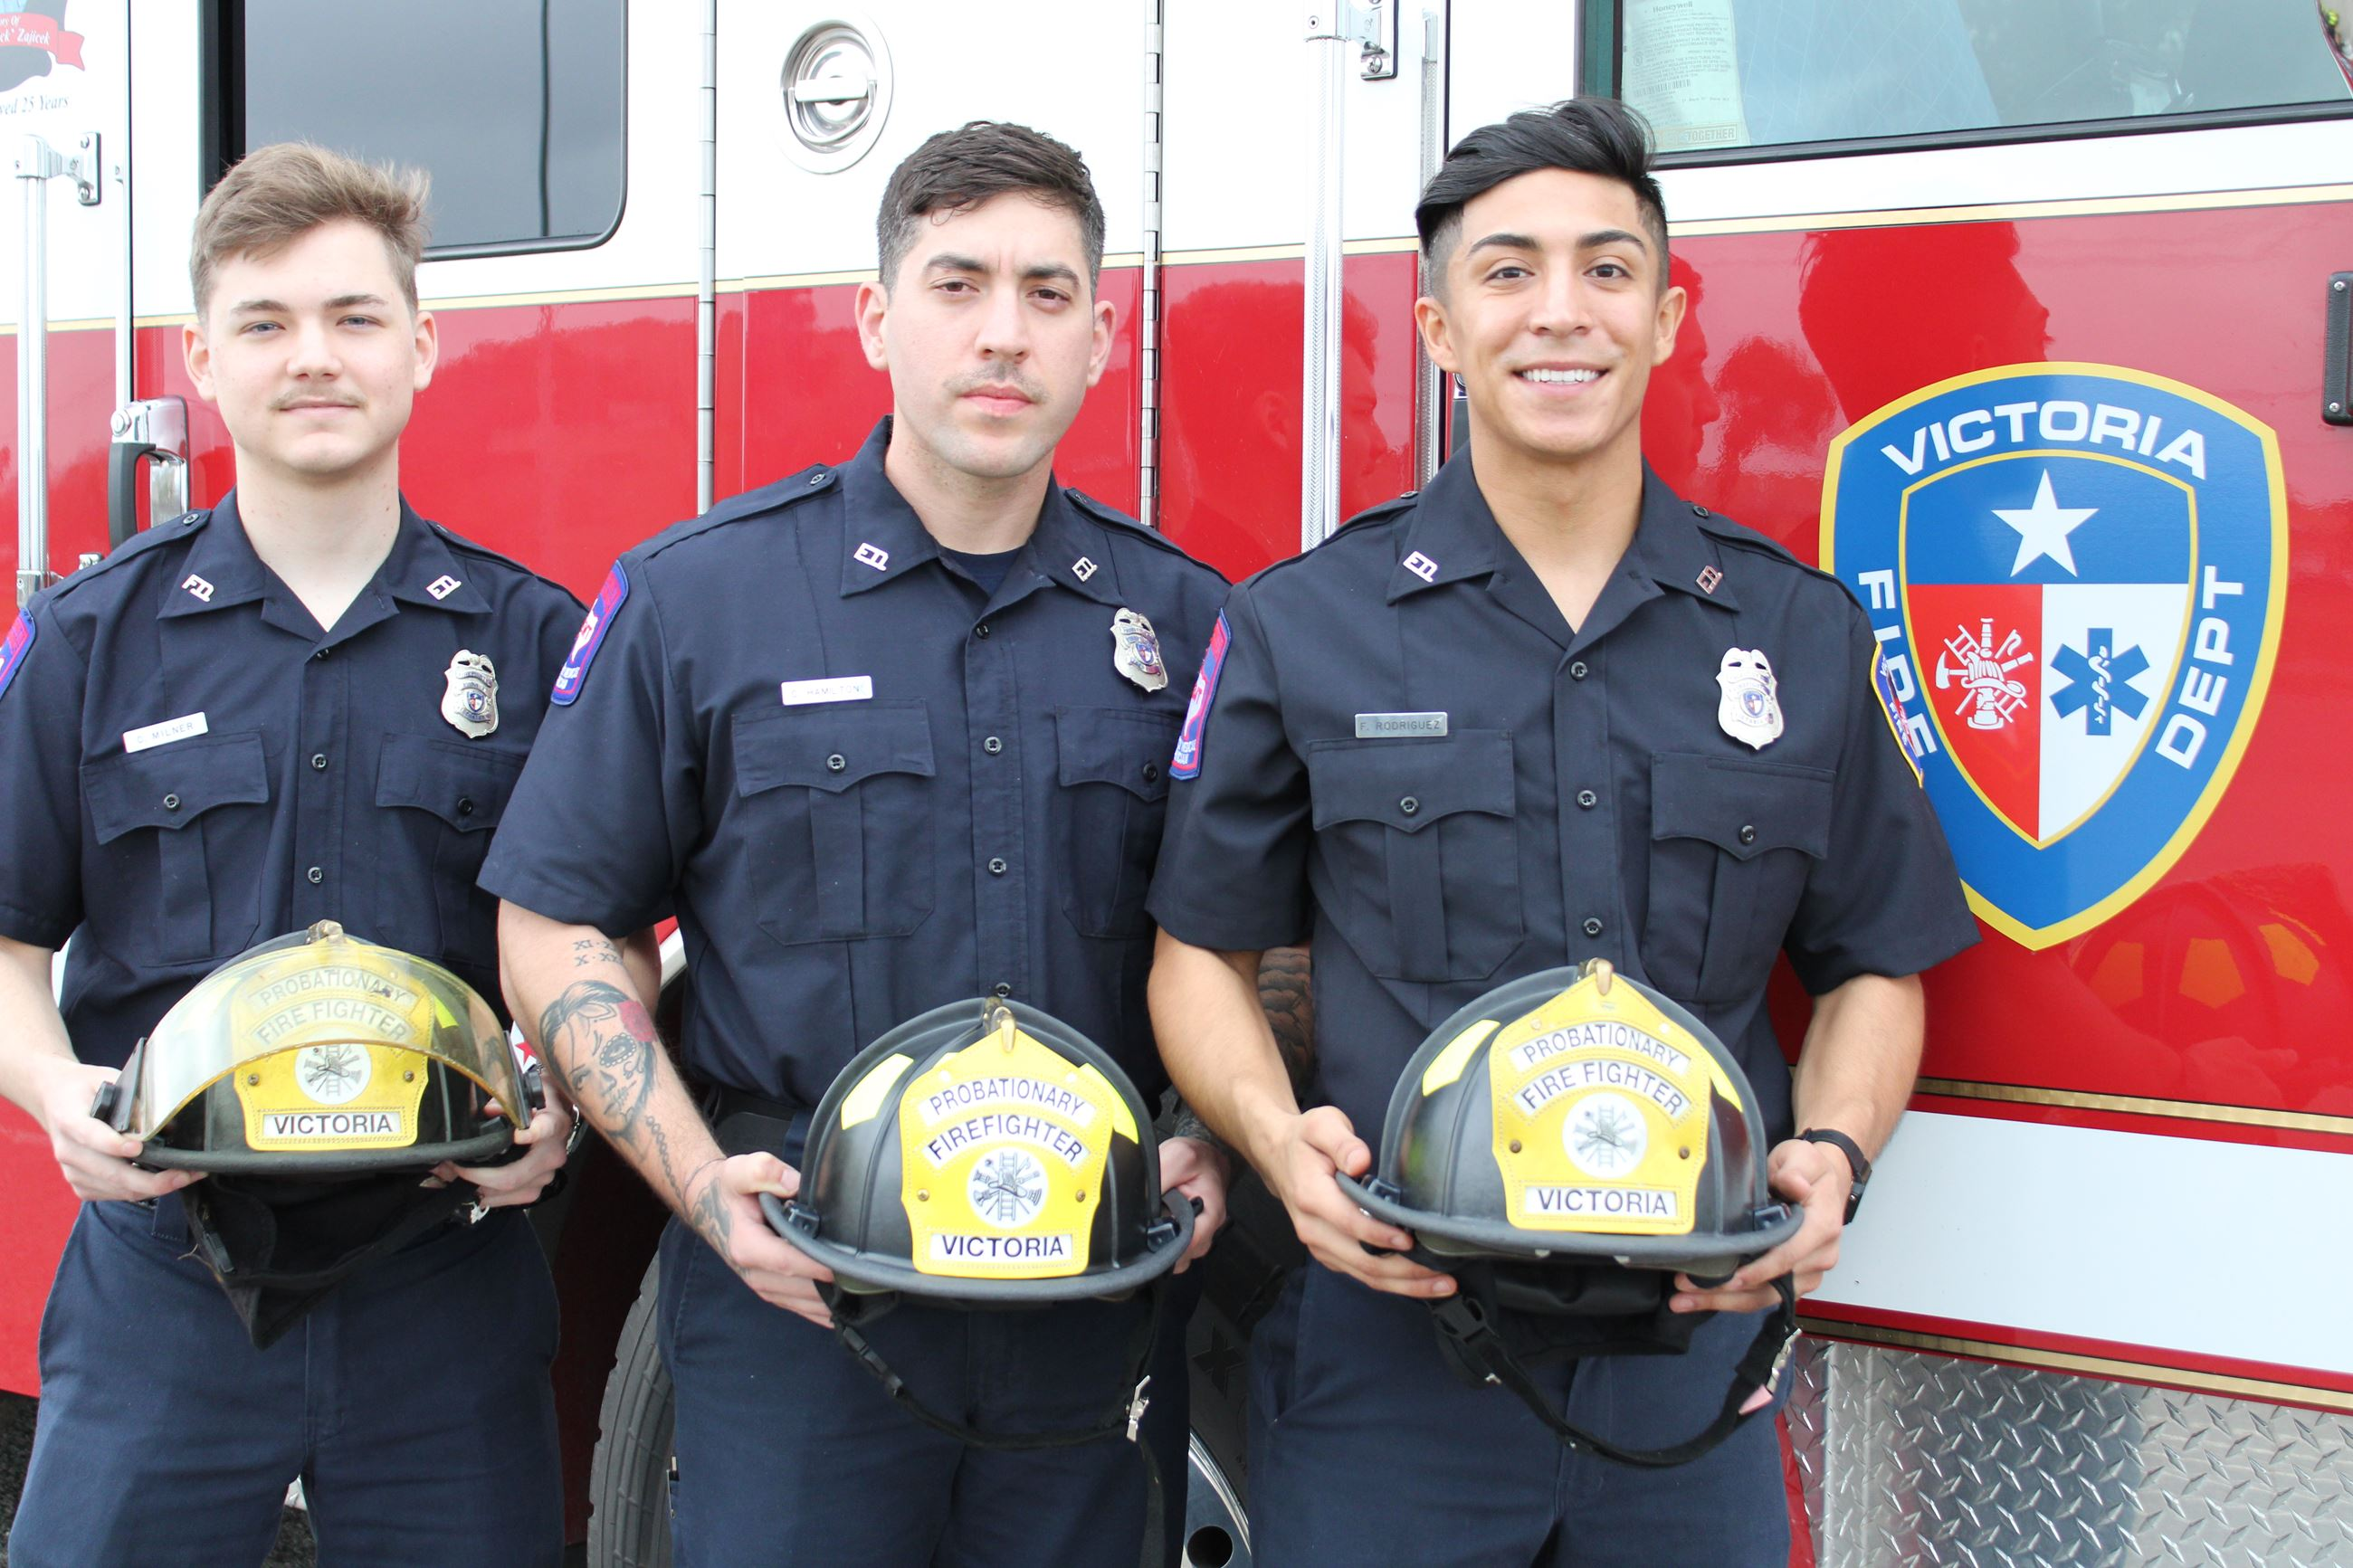 EMT firefighter trainees with helmets in front of fire truck